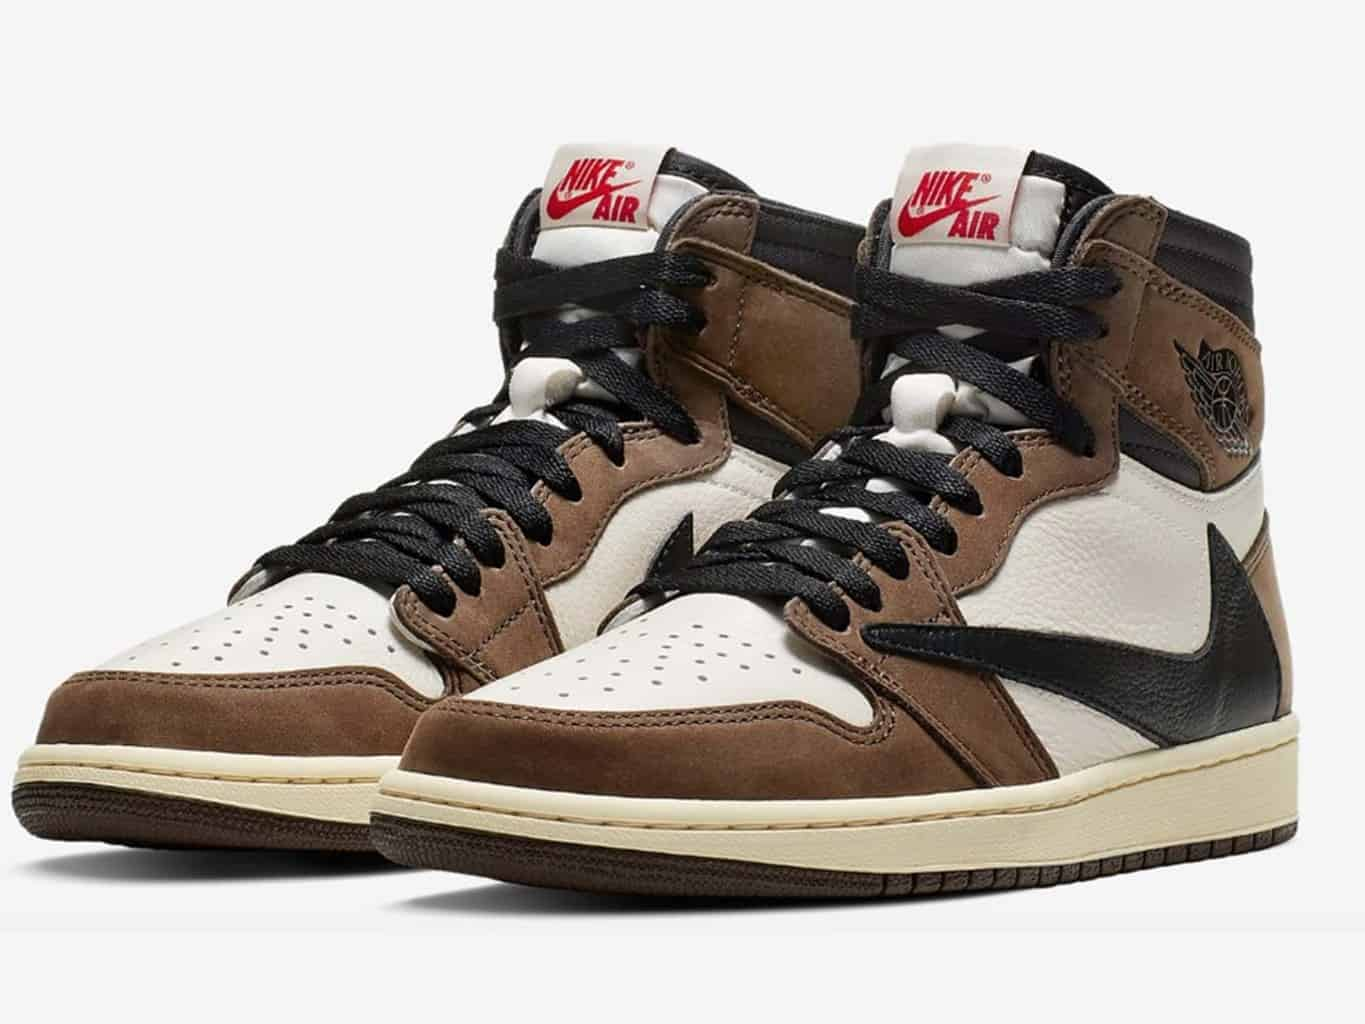 0a15f86cffc1 Everything We Know About the Travis Scott x Air Jordan 1 Retro High OG